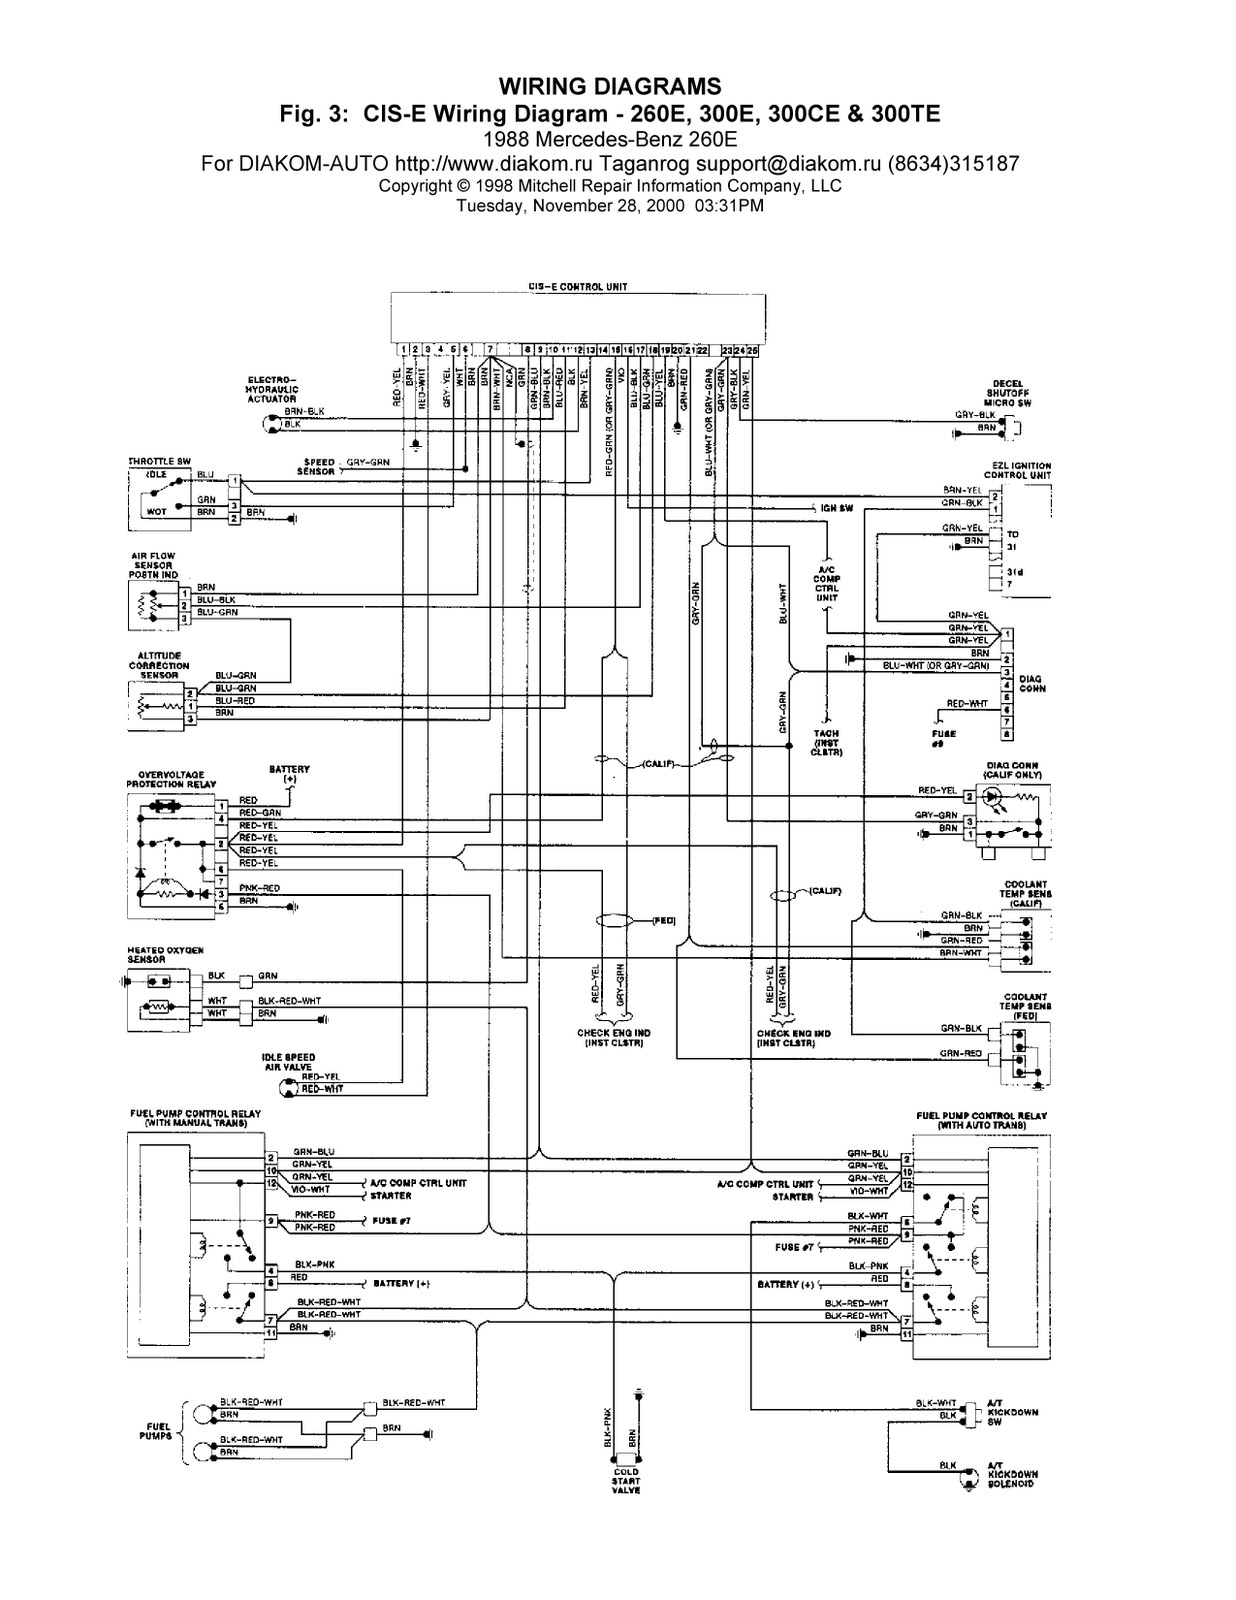 1988 mercedes 260e cis e wiring diagrams schematic wiring diagrams solutions